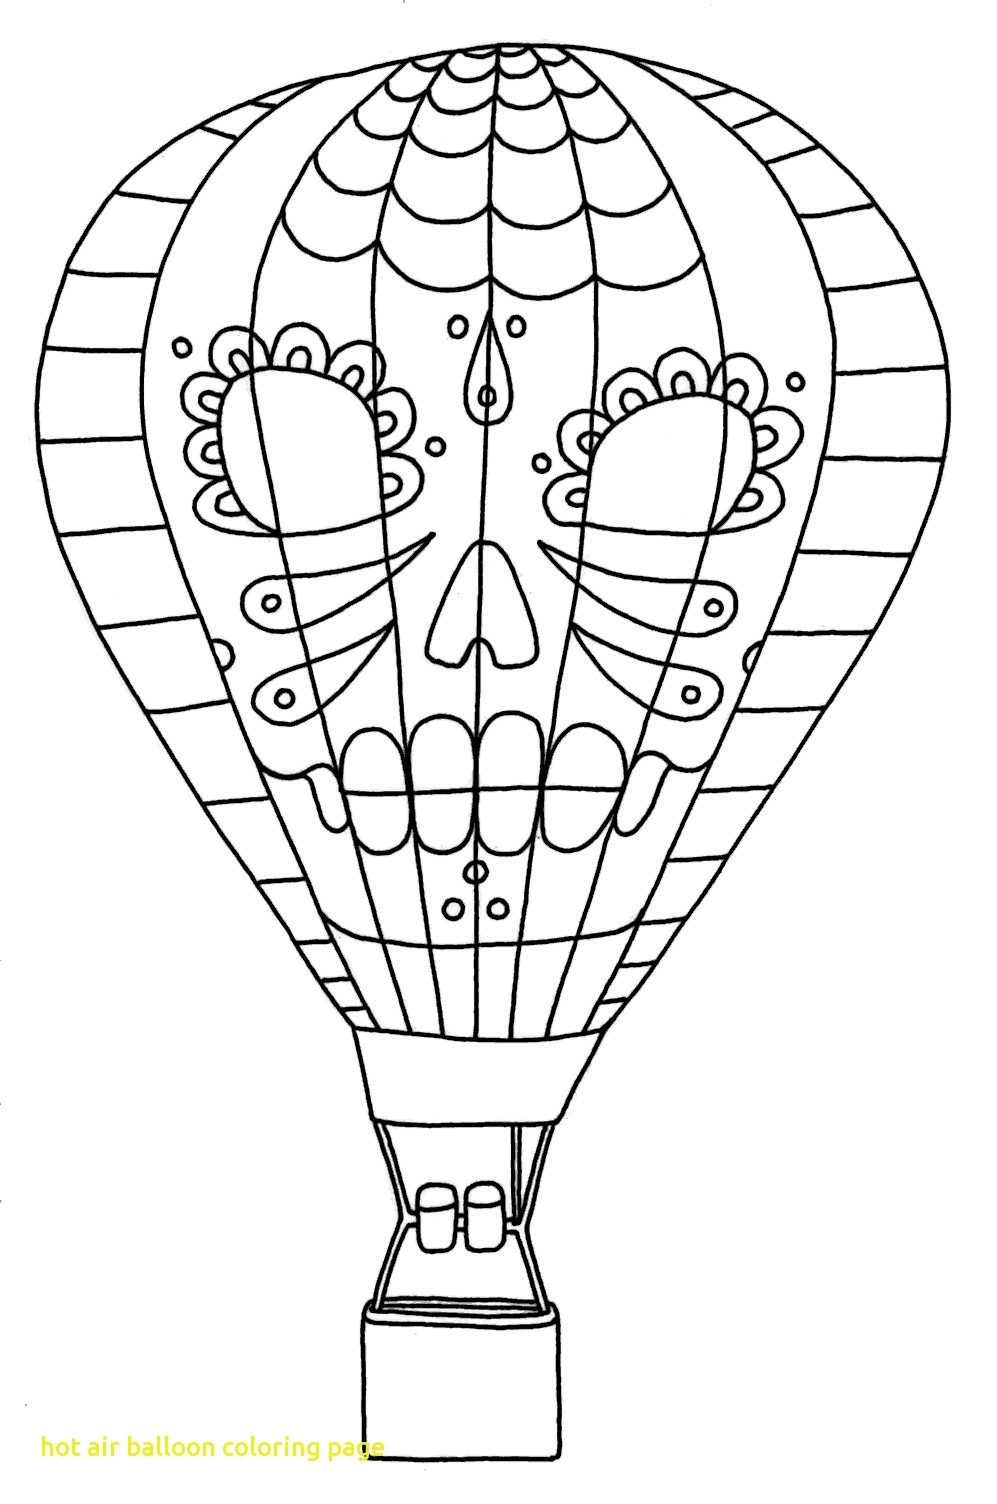 Fresh Hot Air Balloons Coloring Pages Collection to Print Of Hot Air Balloon Coloring Page Collection